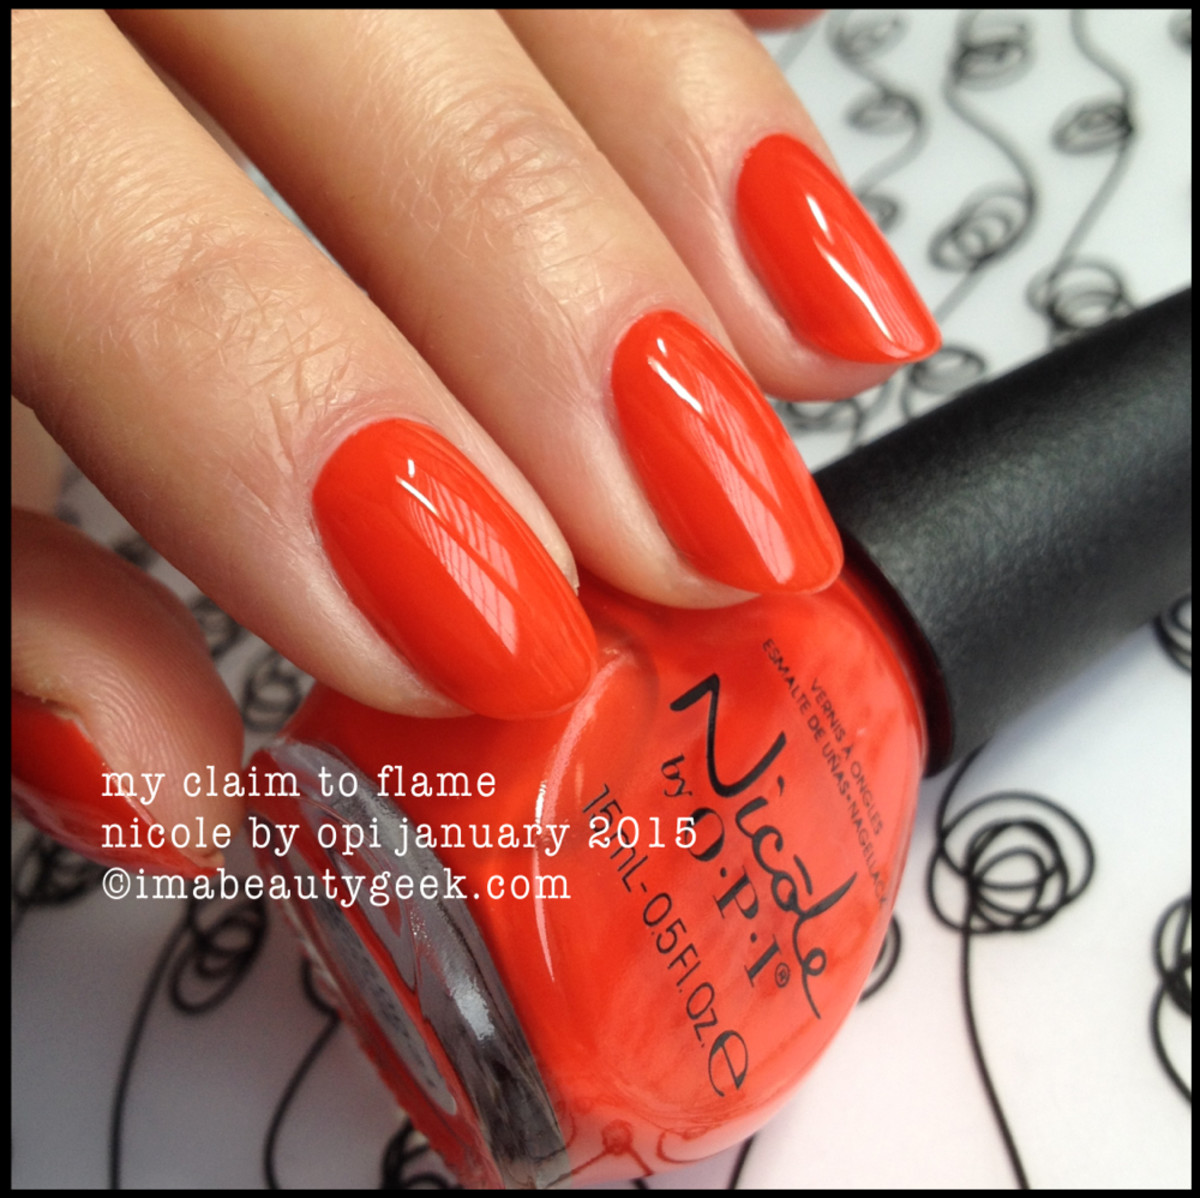 Nicole by OPI Claim to Flame